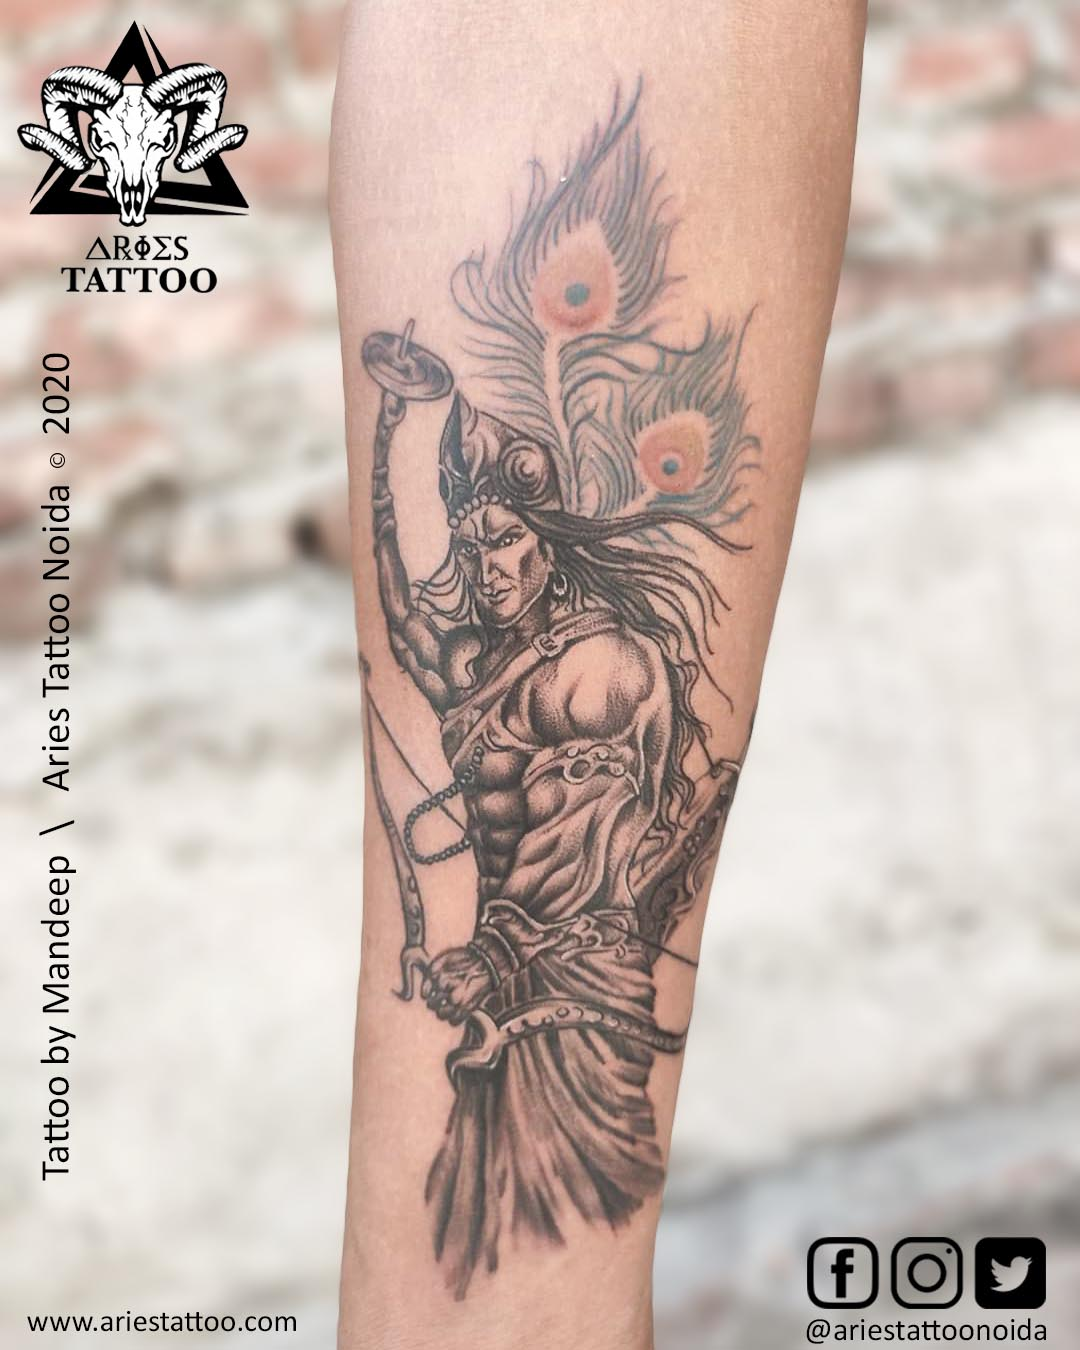 lord krishna tattoos_mandeep|Aries Tattoo Noida | Tattoo Shop and Studio In Noida